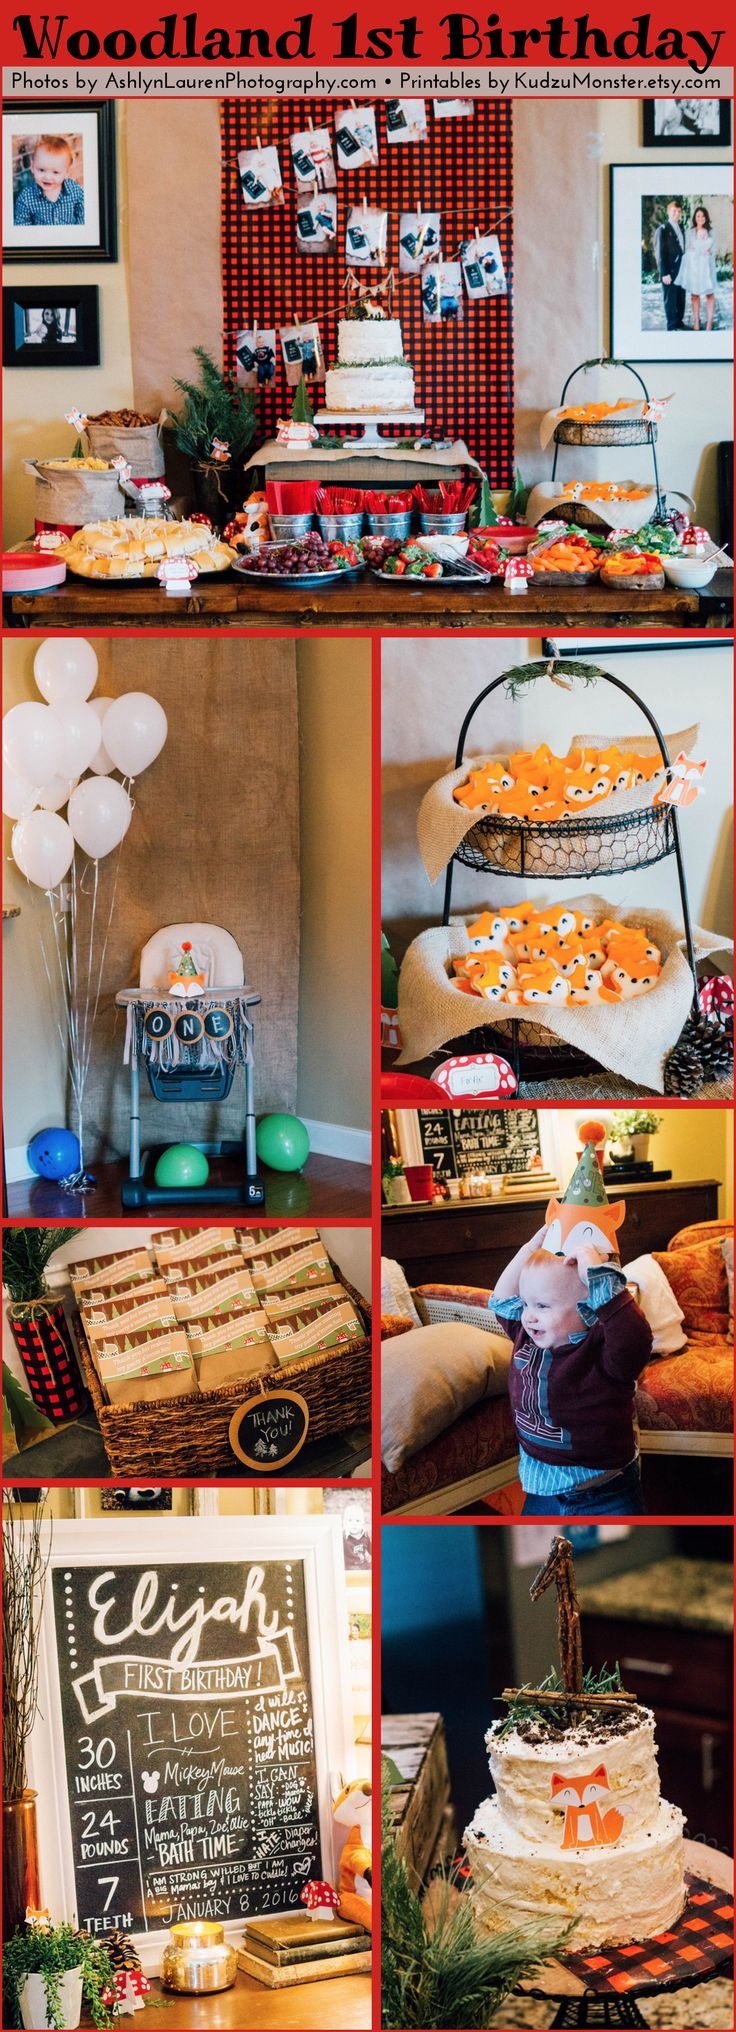 Adorable 1st birthday party with woodland fox lumberjack theme .  Party Decor Printable from this party are available at www.KudzuMonster.etsy.com  and the beautiful photos are by www.ashlynlaurenphotography.com